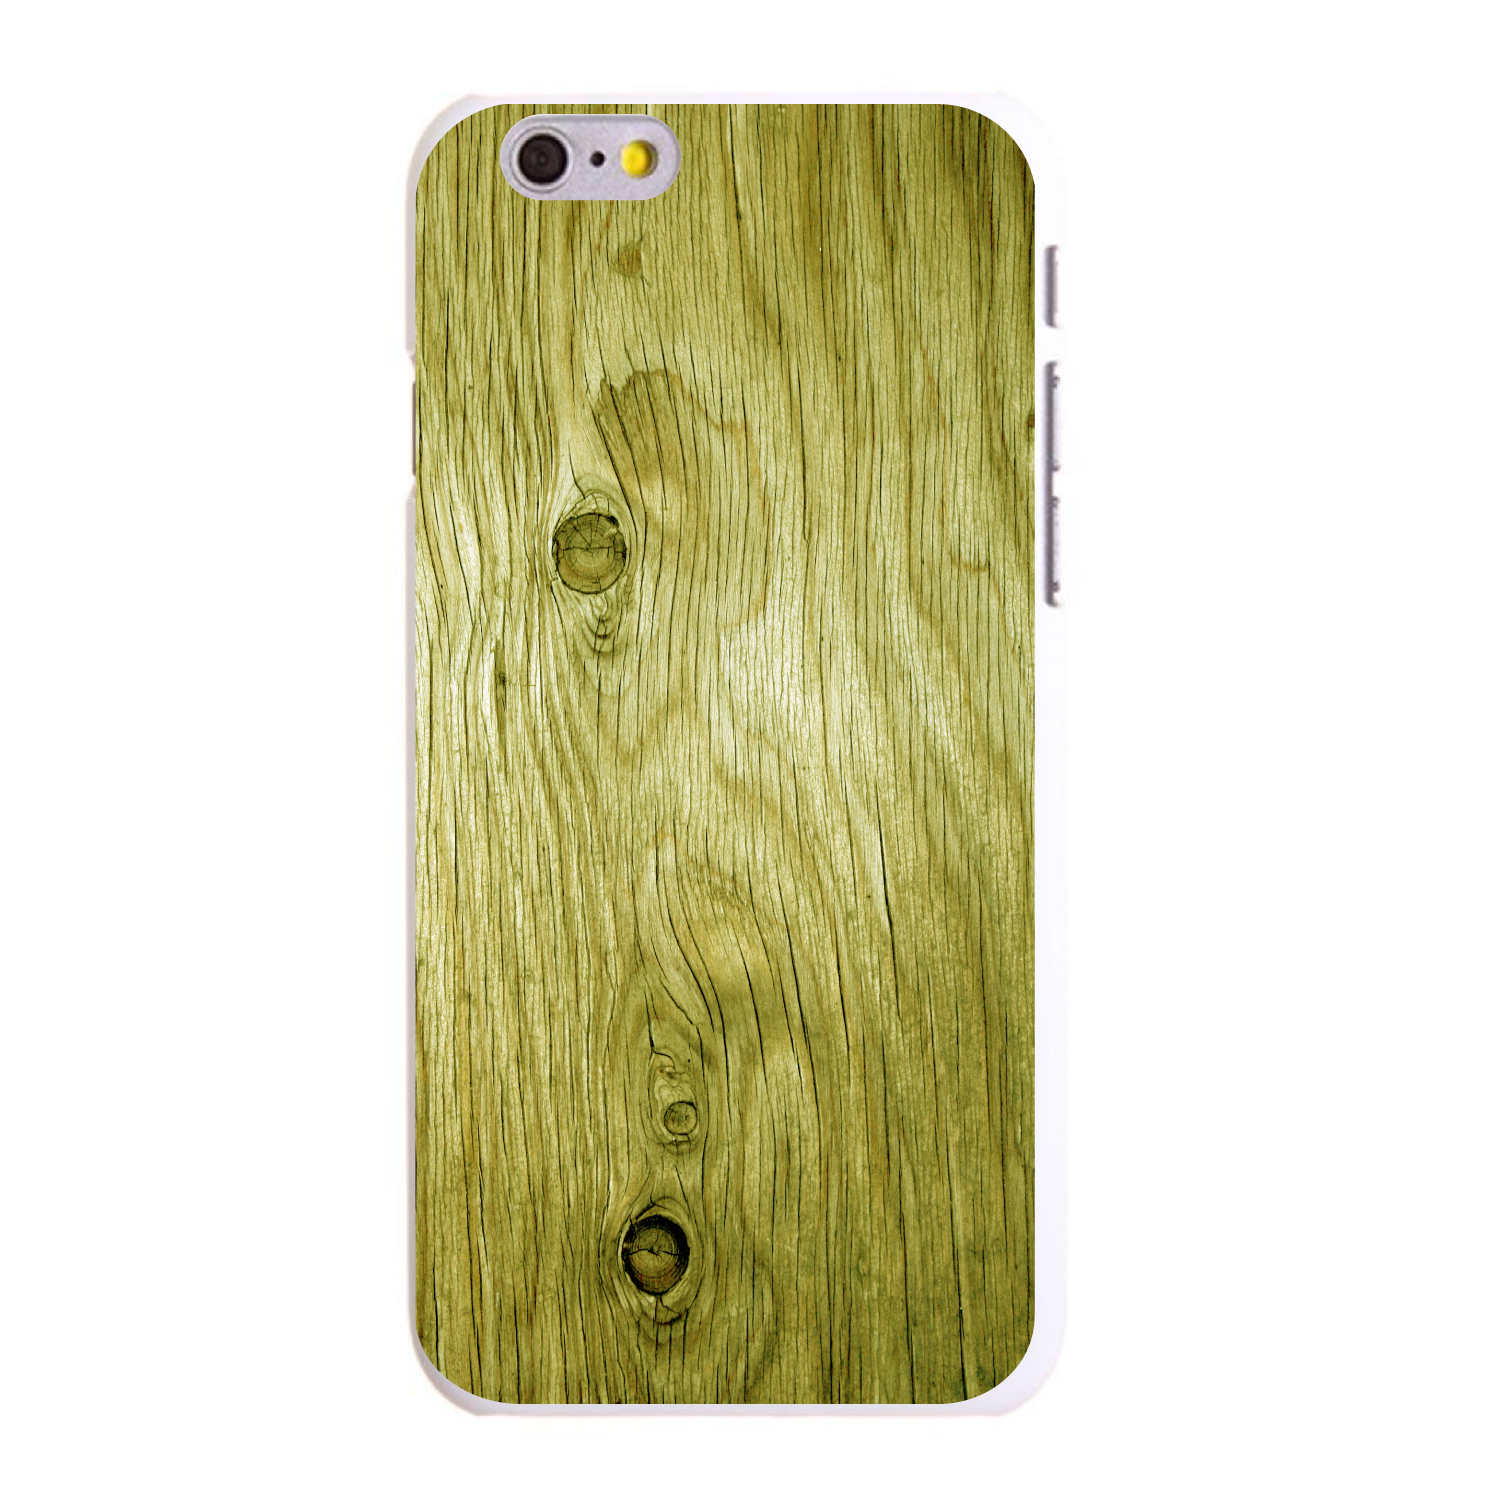 """CUSTOM White Hard Plastic Snap-On Case for Apple iPhone 6 PLUS / 6S PLUS (5.5"""" Screen) - Yellow Weathered Wood Grain"""